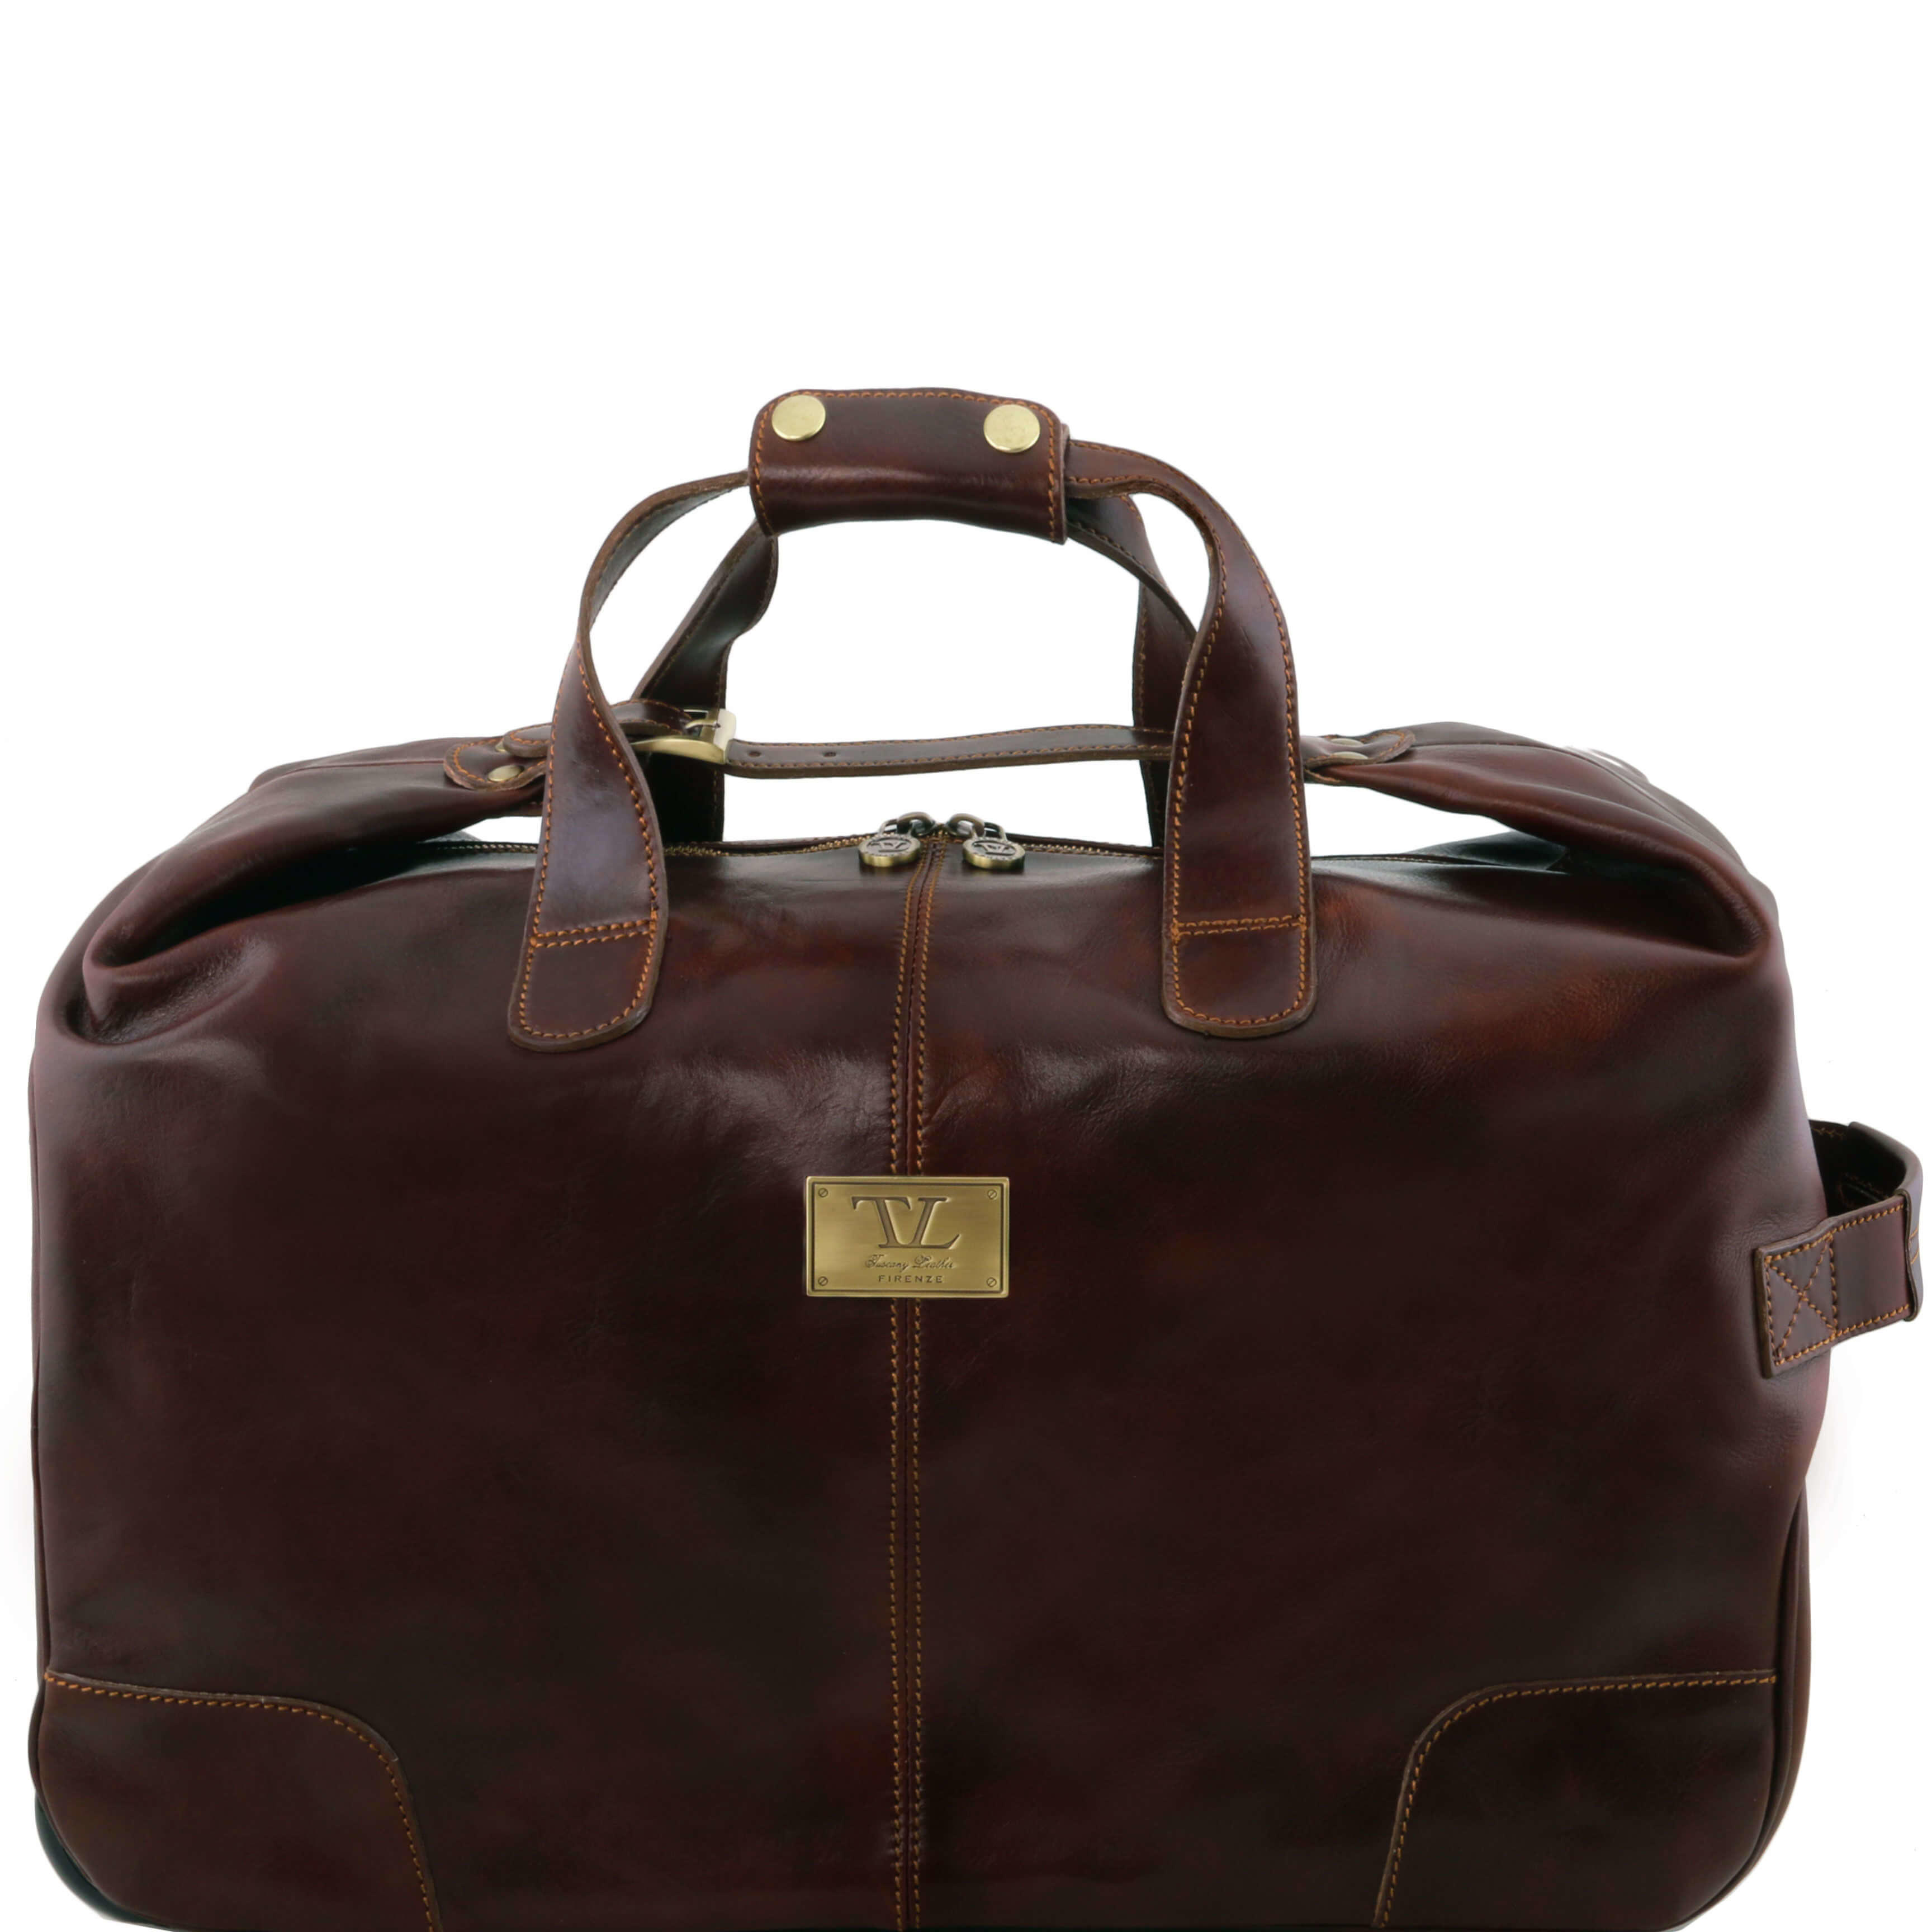 Tuscany Leather Barbados Trolley - Wheeled-Lugguage-Travel-Bag-Holdall-Case - Dark Brown